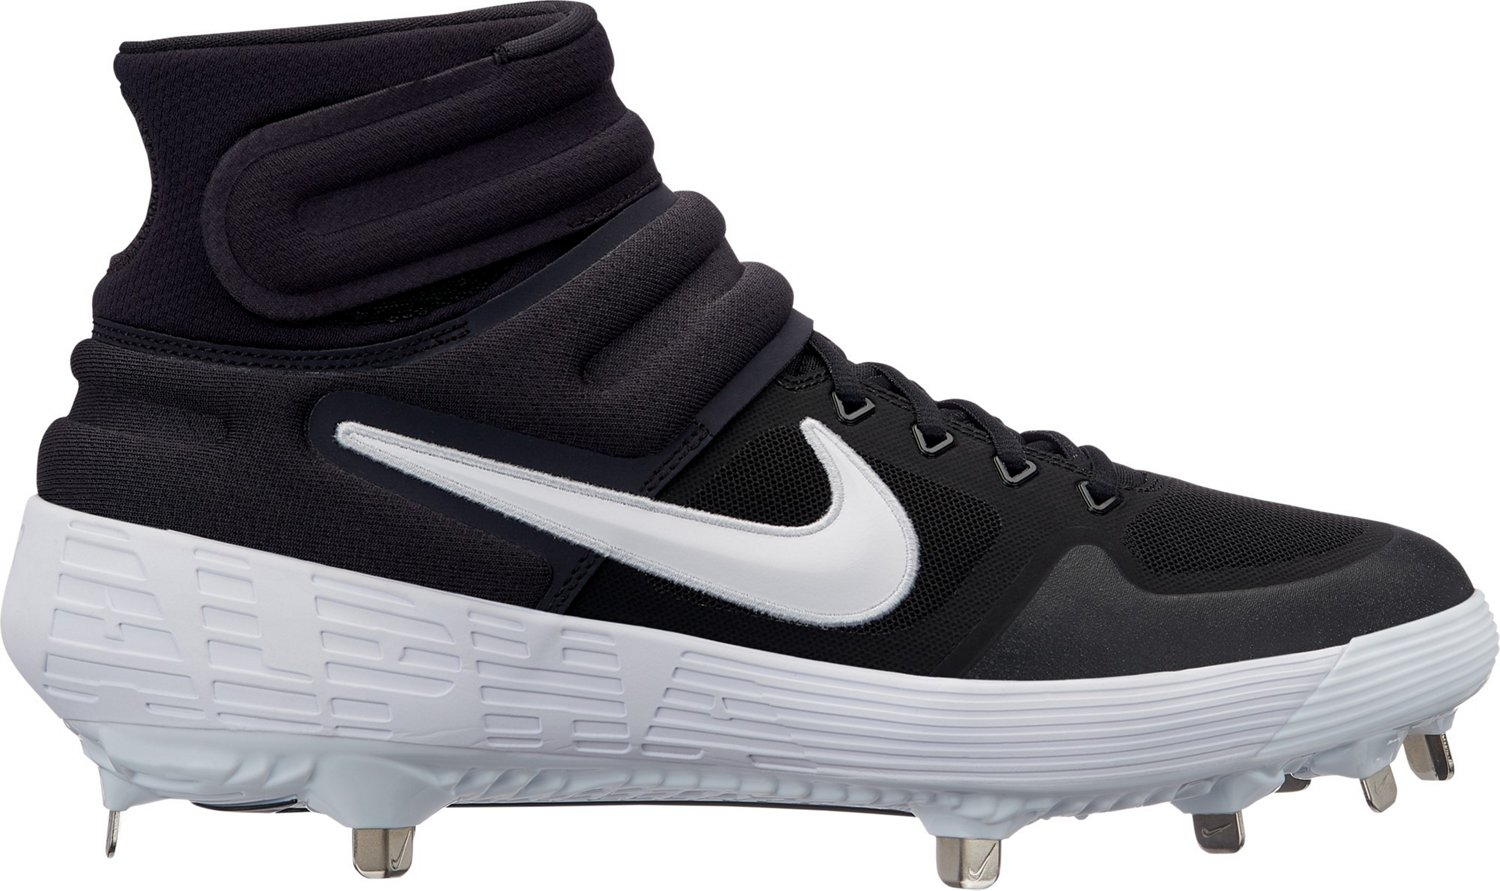 58cb2590d029f Display product reviews for Nike Men's Alpha Huarache Elite 2 Mid Baseball  Cleats